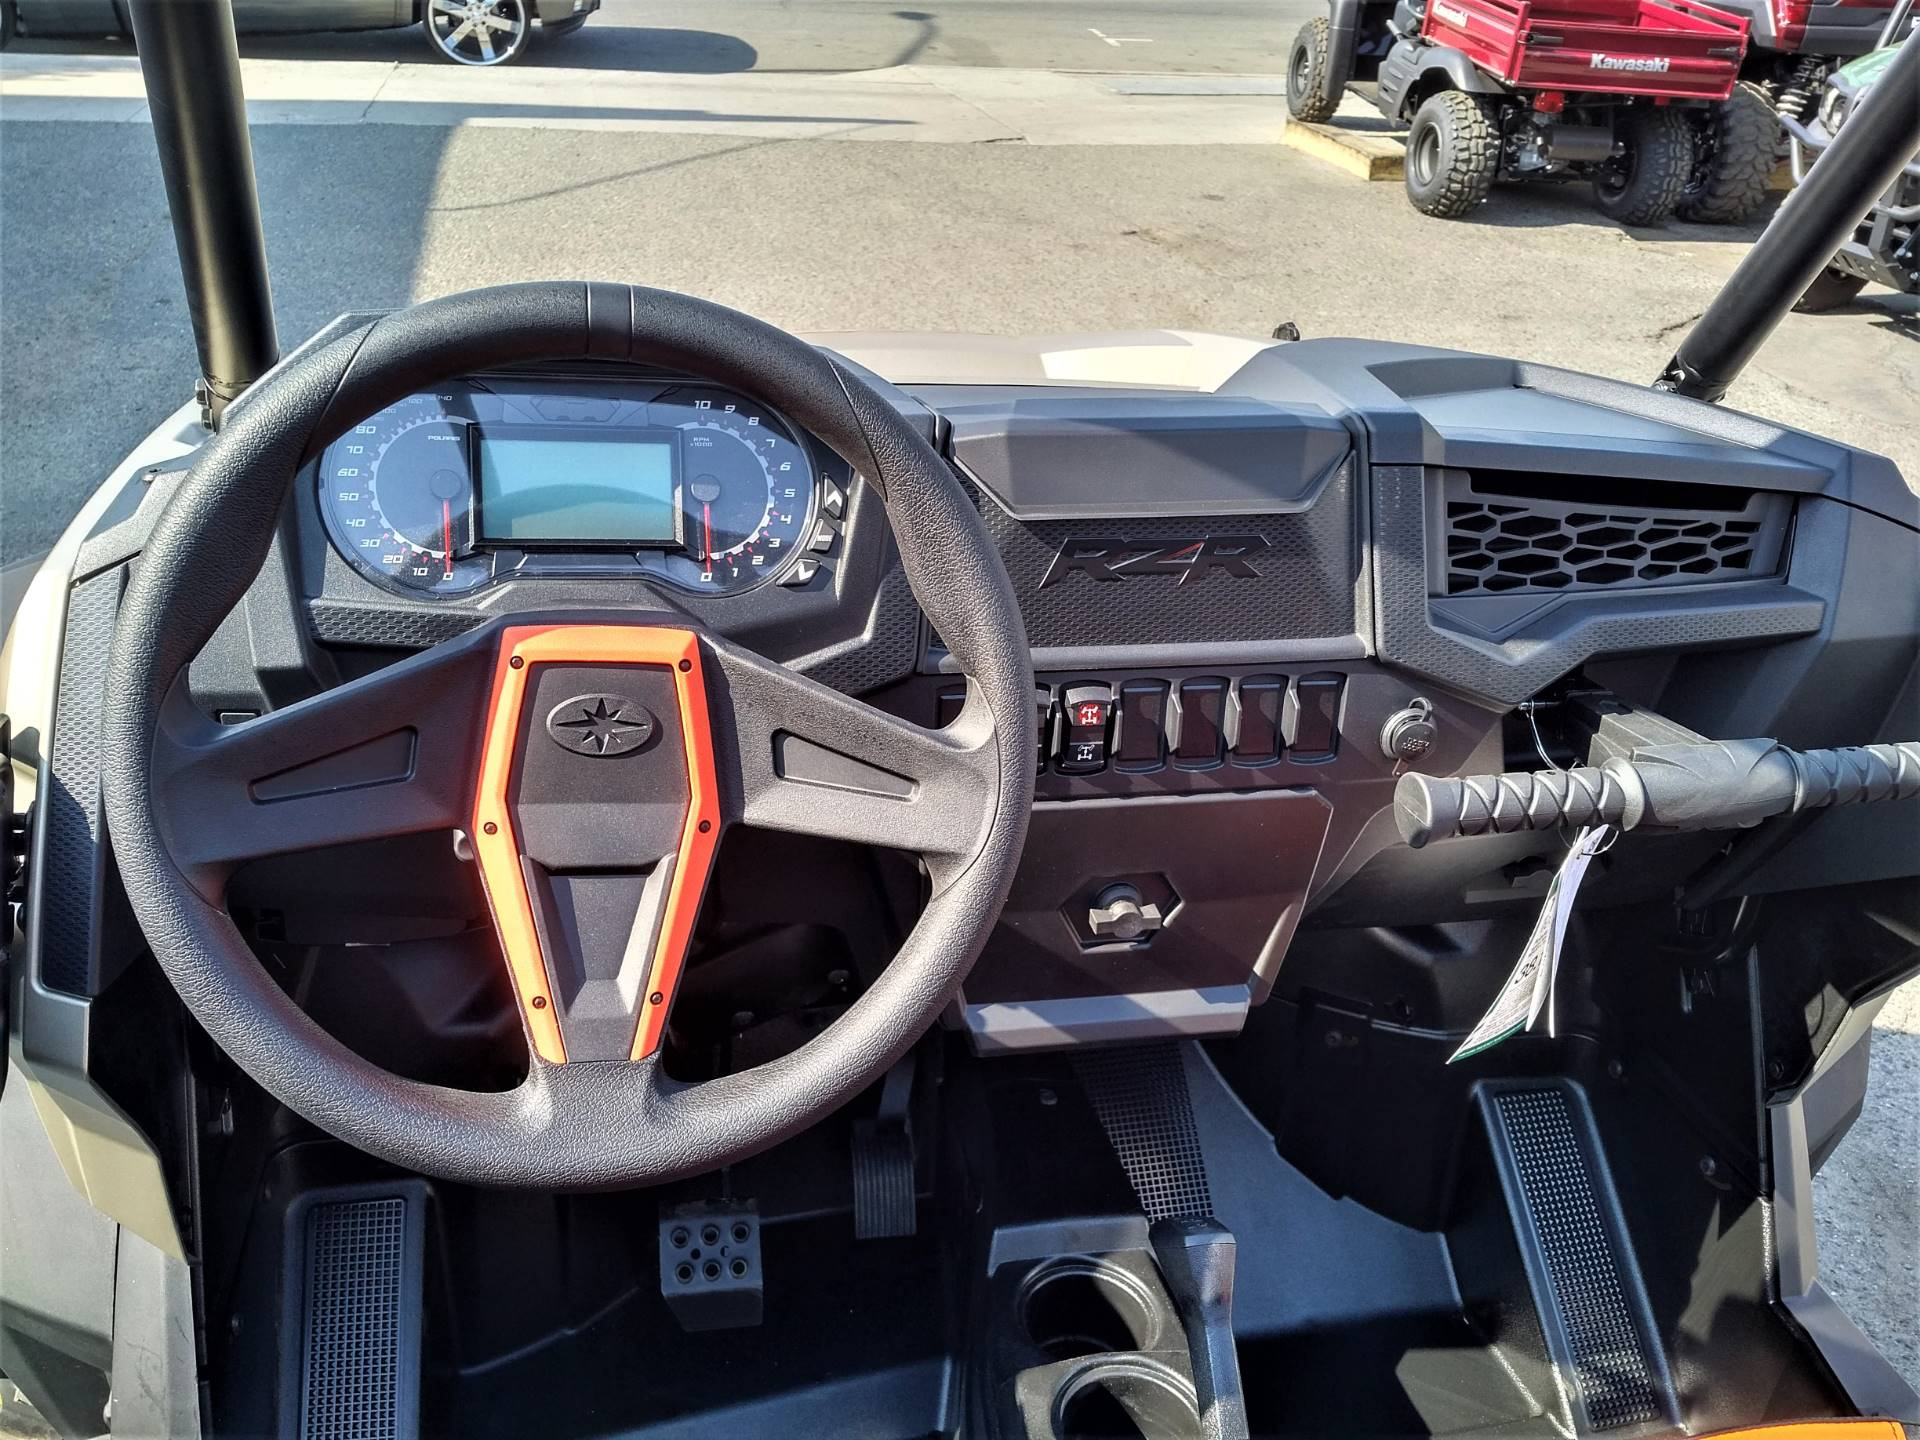 2021 Polaris RZR XP 4 Turbo in Salinas, California - Photo 14